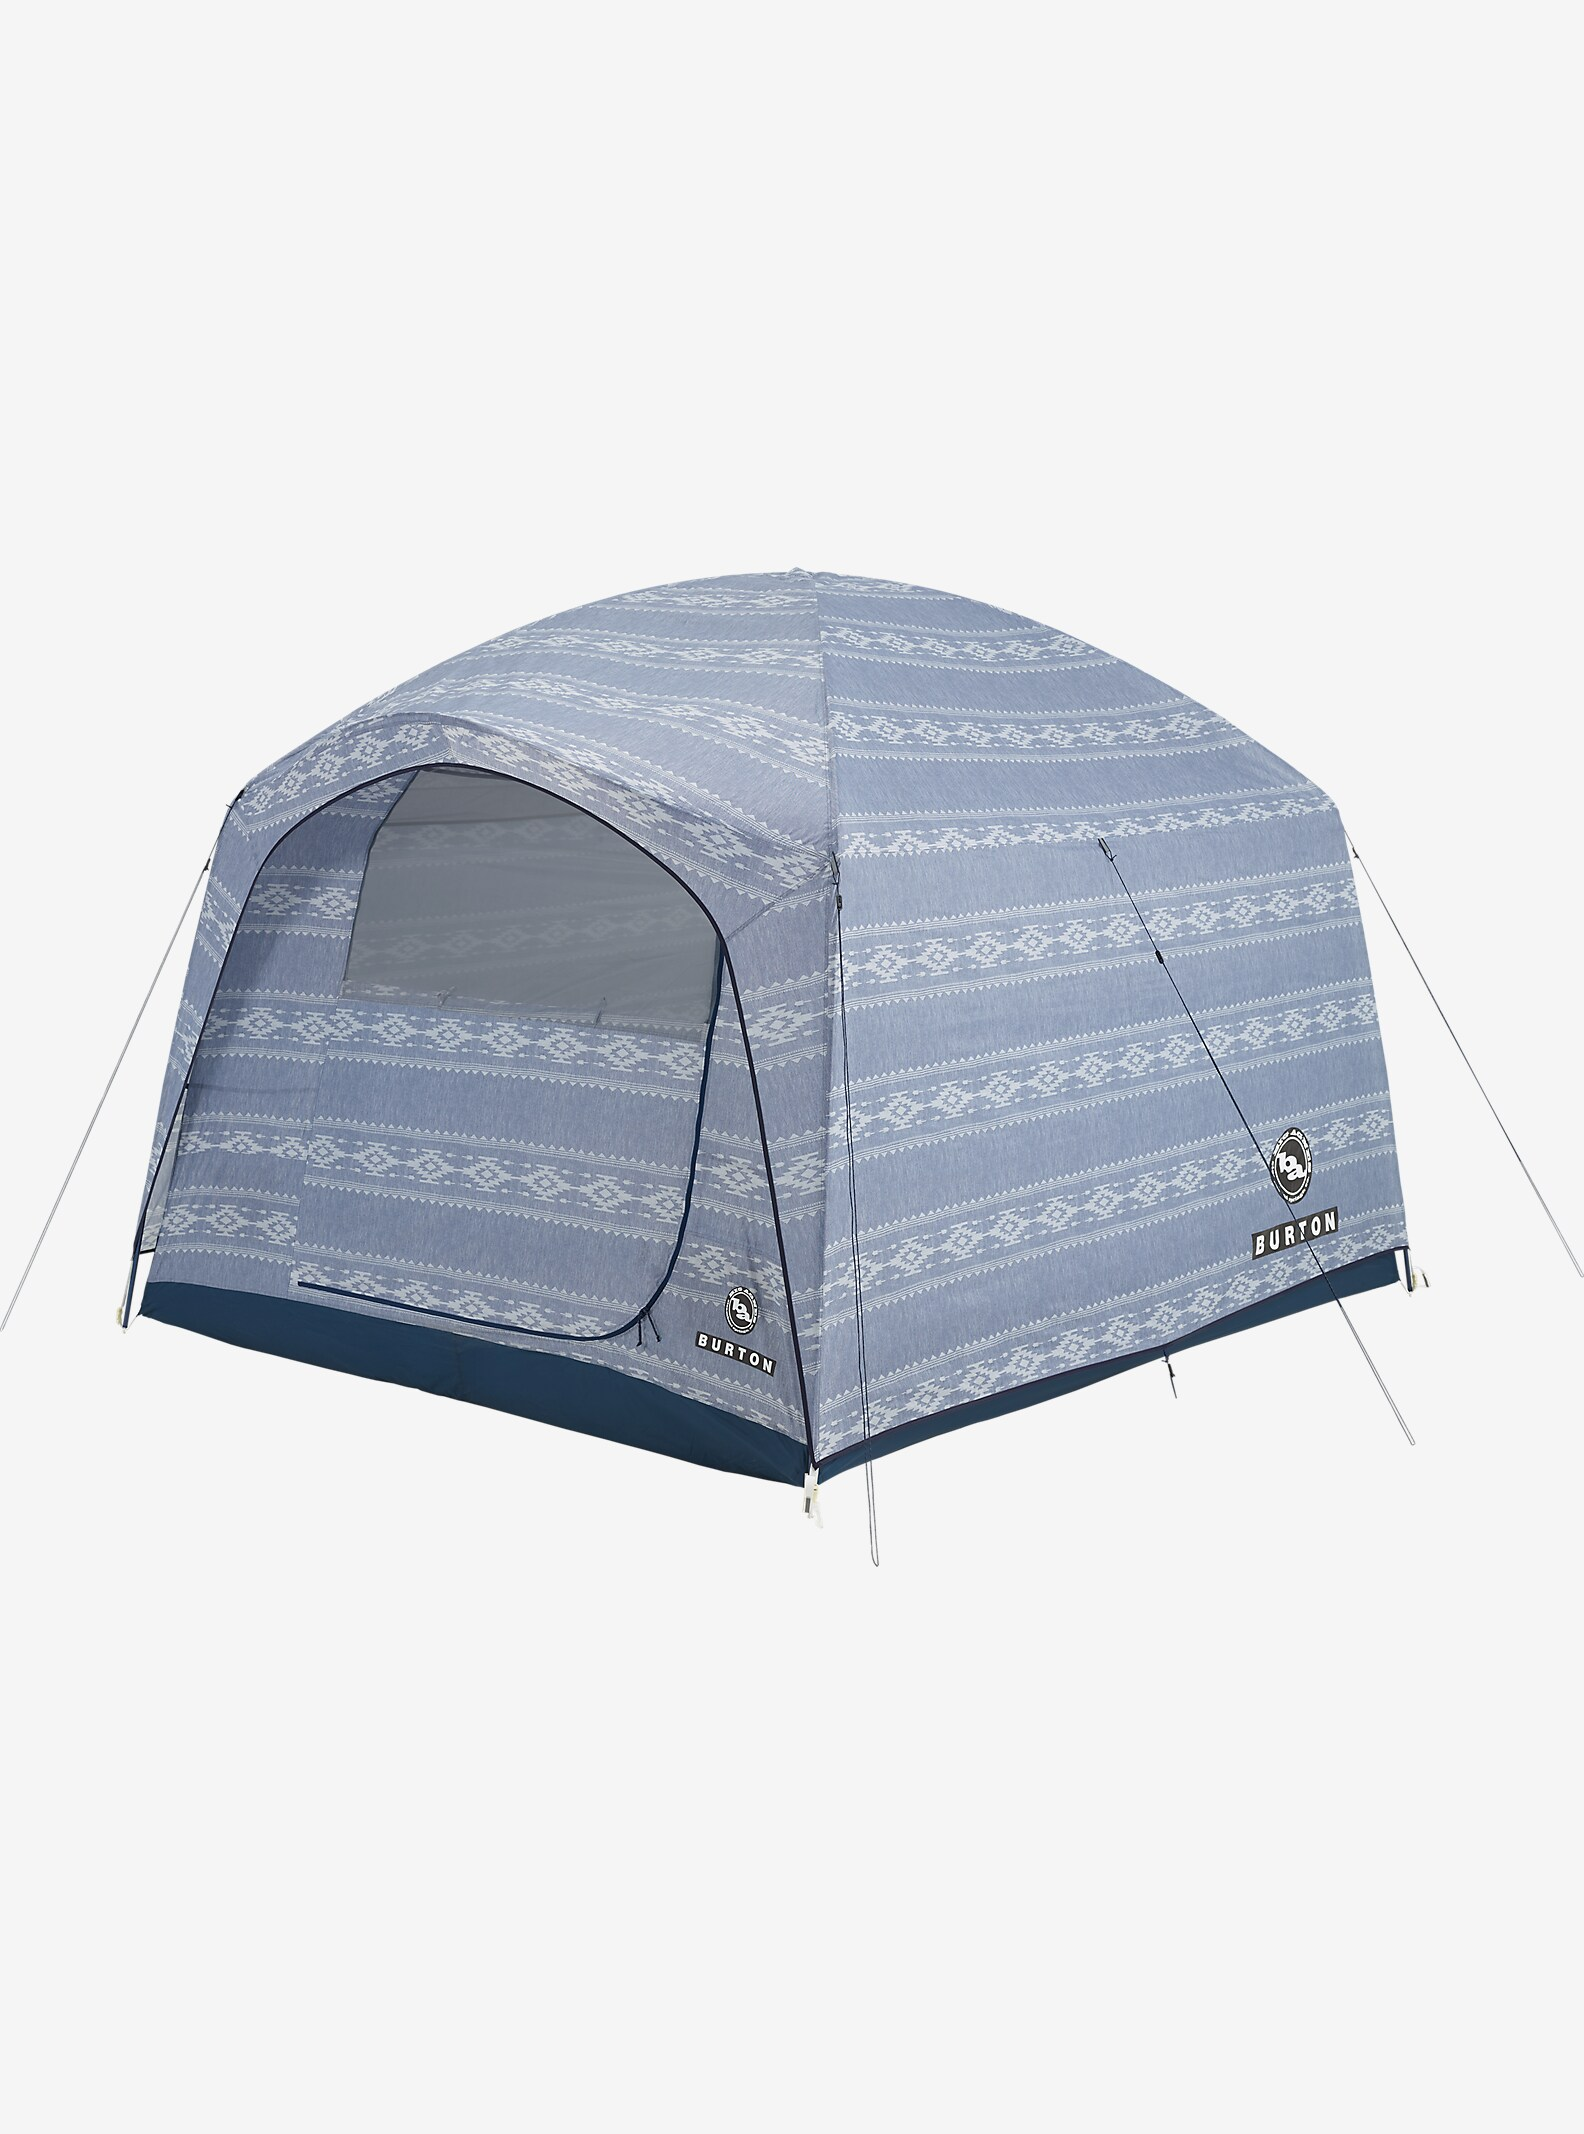 Big Agnes x Burton Stone Hut Tent shown in Famish Stripe